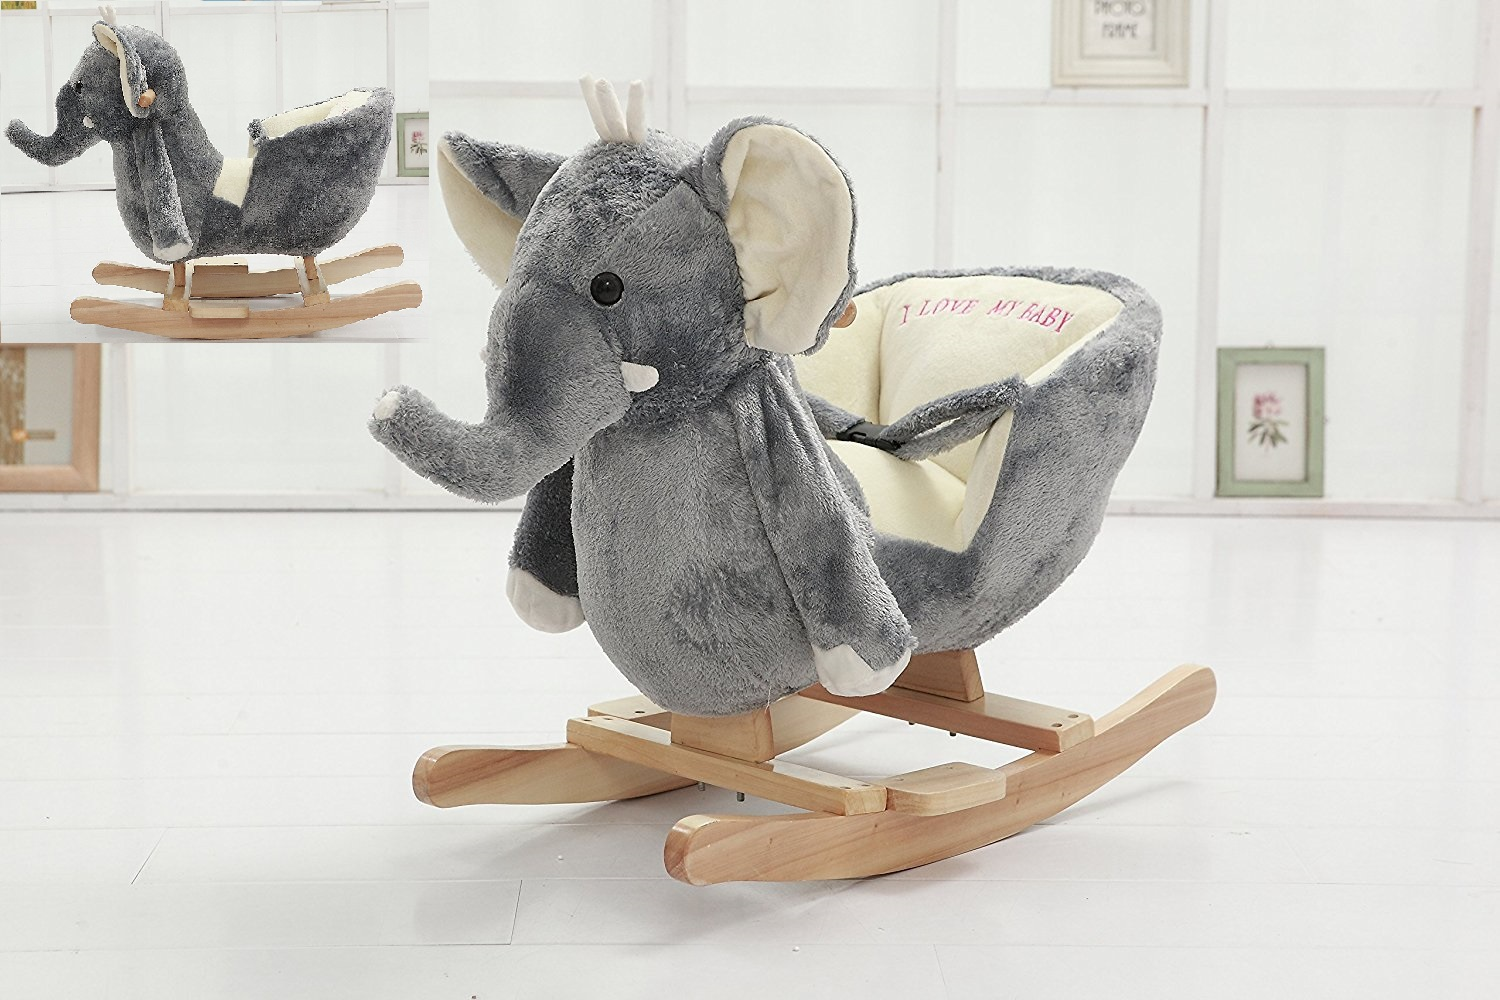 Danybaby Rocking Elephant Chair Stuffed Plush Toddler